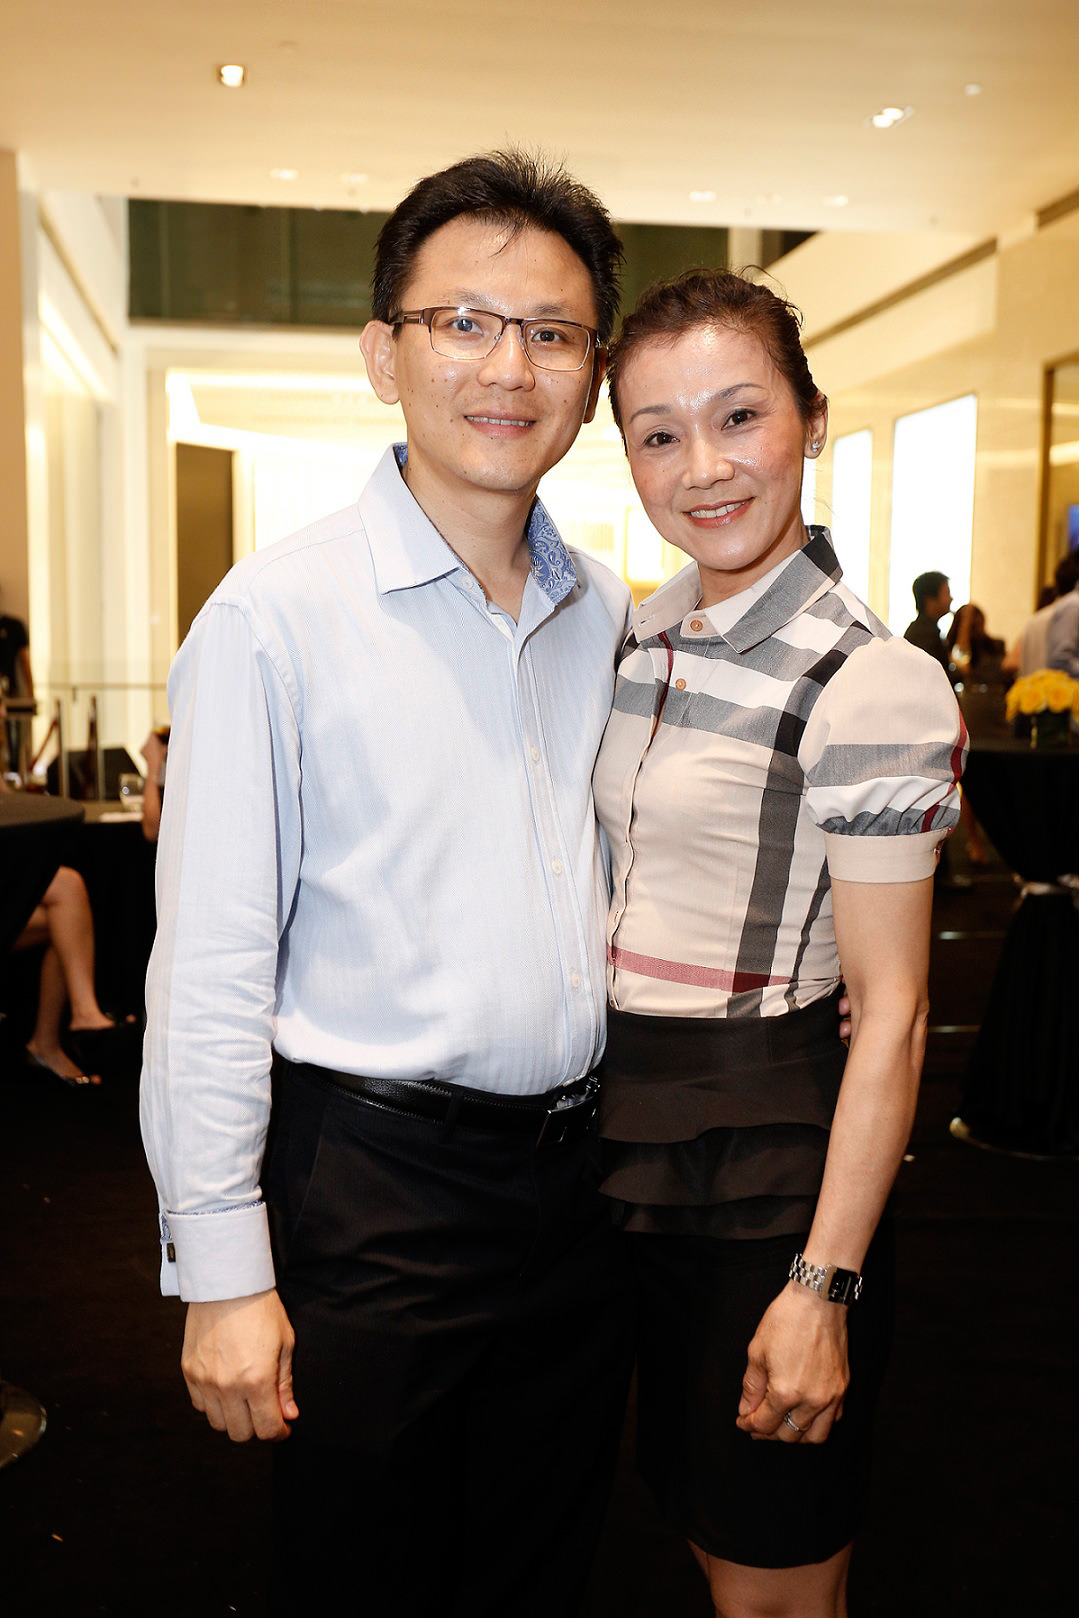 From L-R Mr Desmond Cheo, & Ms Cher Hooi